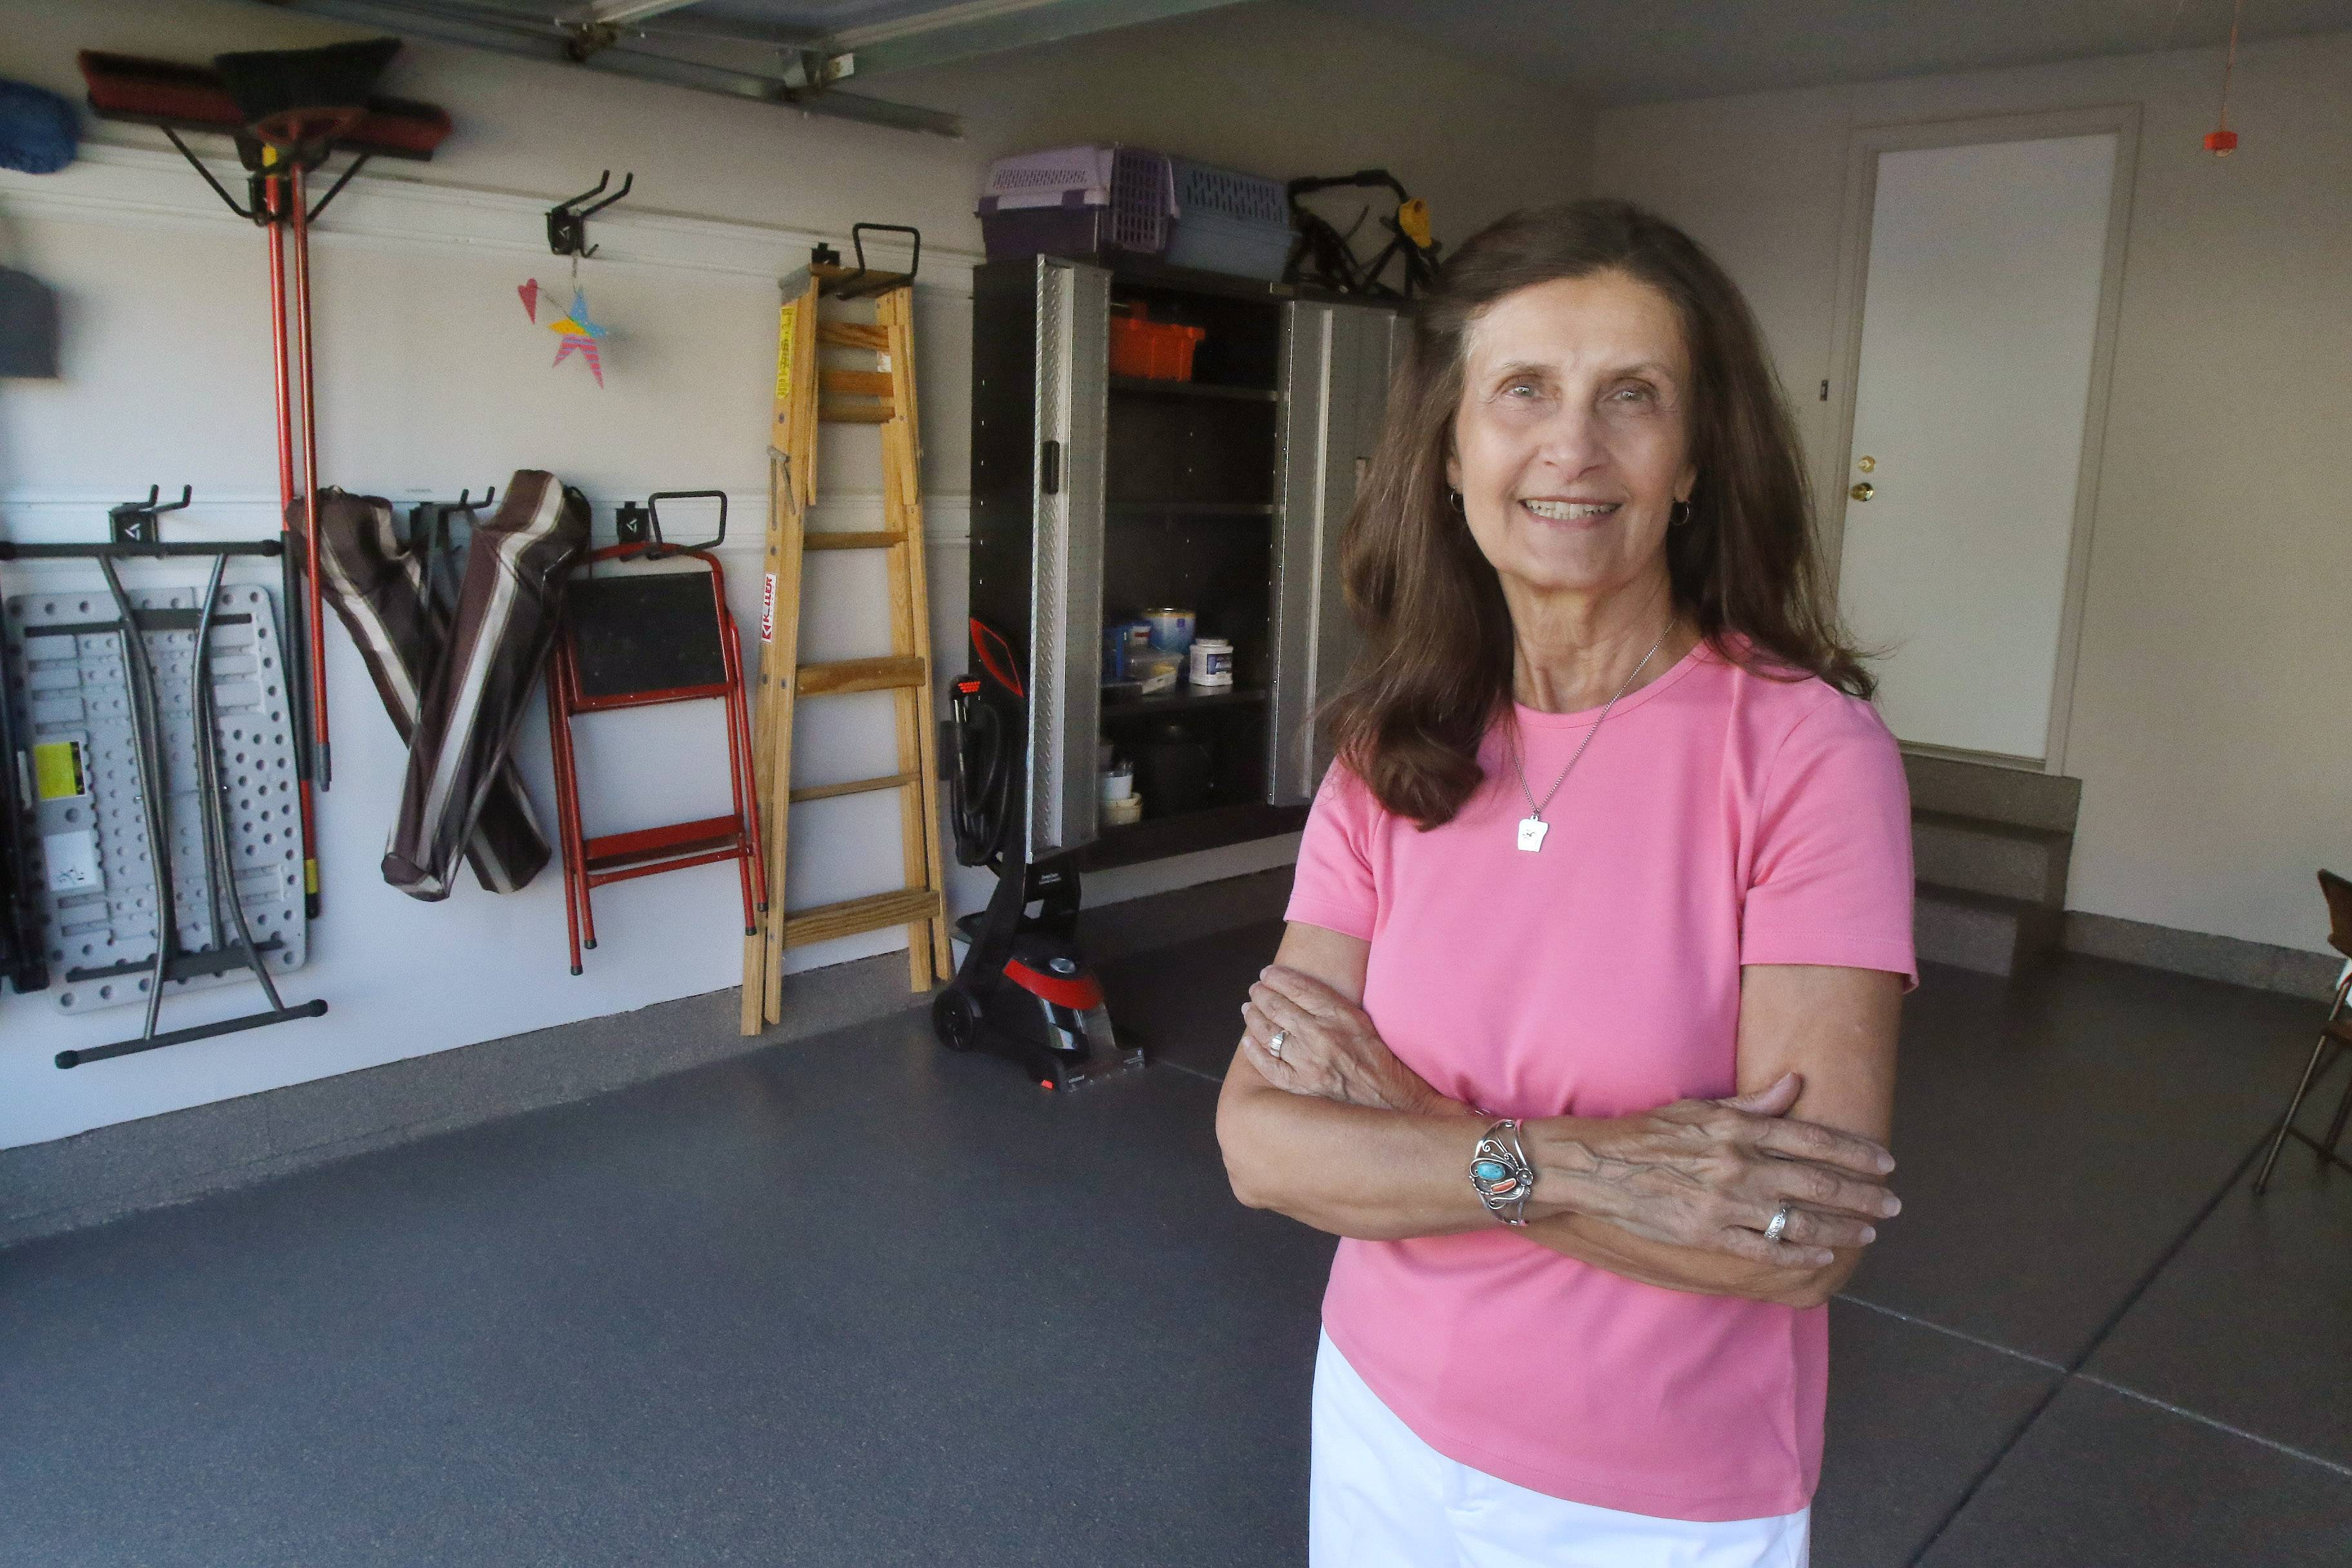 Palatine resident Denise Peterson shows off her garage improvements by the Garage Store. Peterson won a garage makeover through a contest sponsored by the business and the Daily Herald.